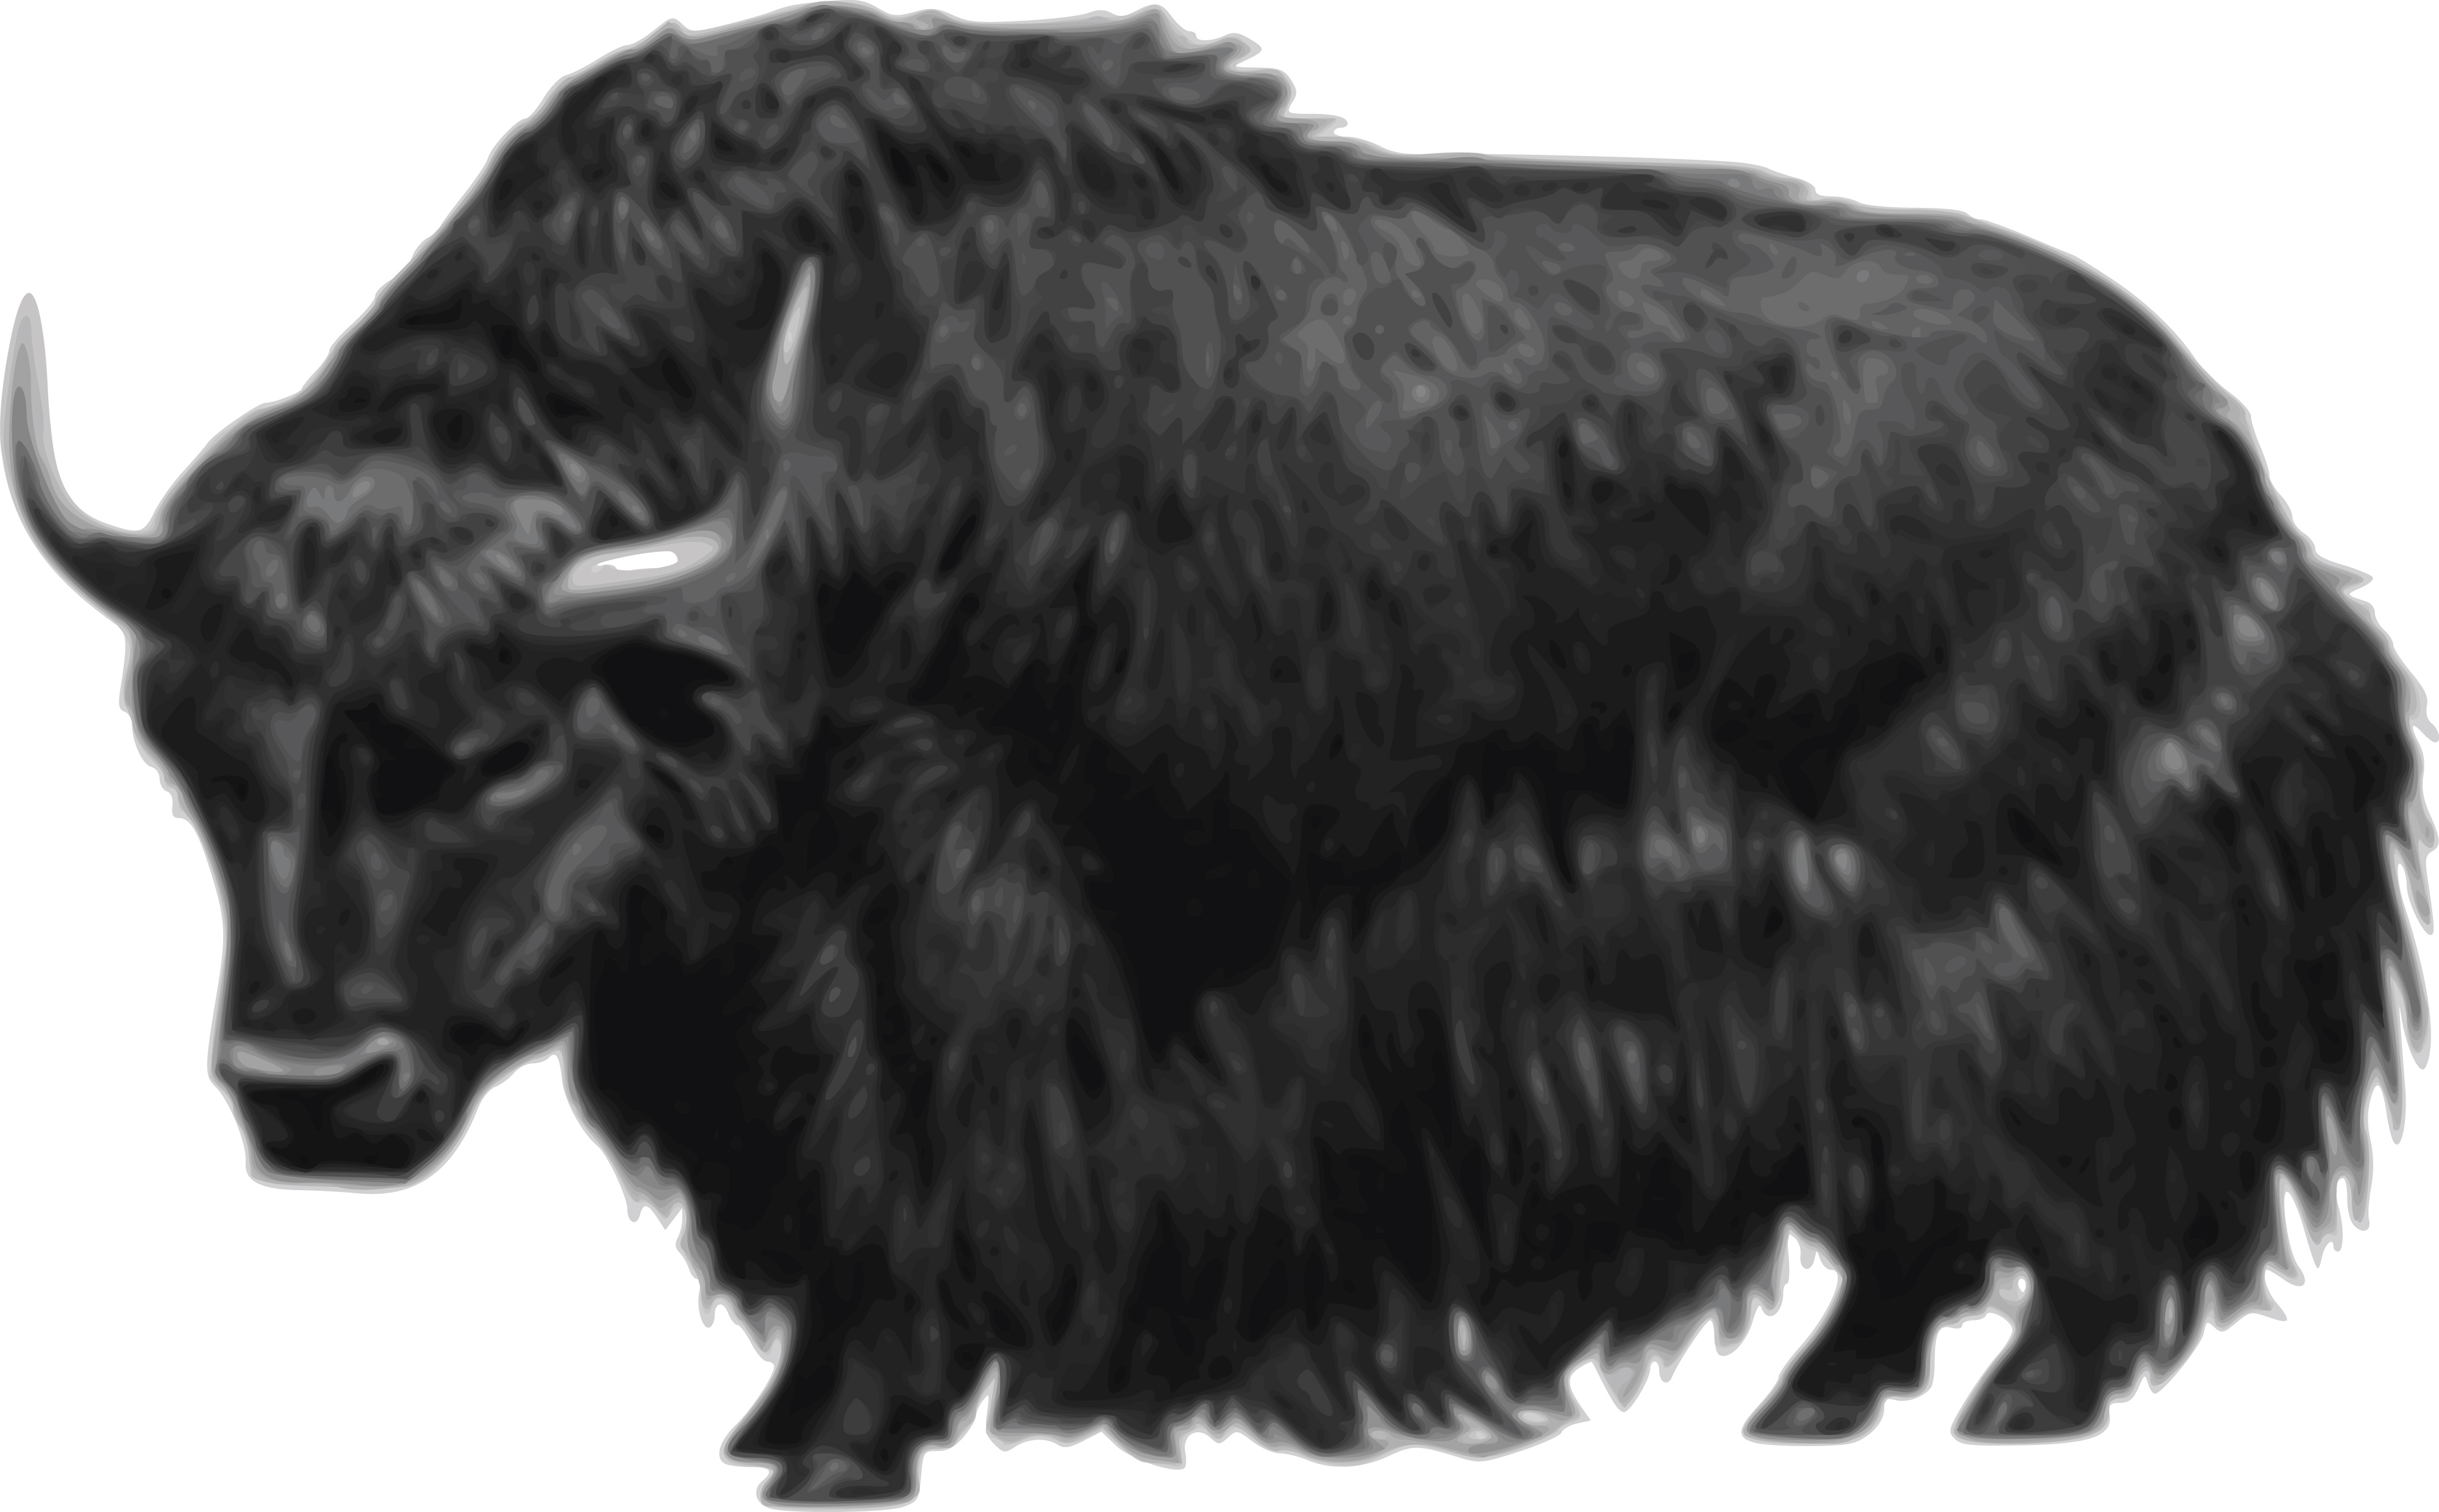 Yak clipart outline. Black and white